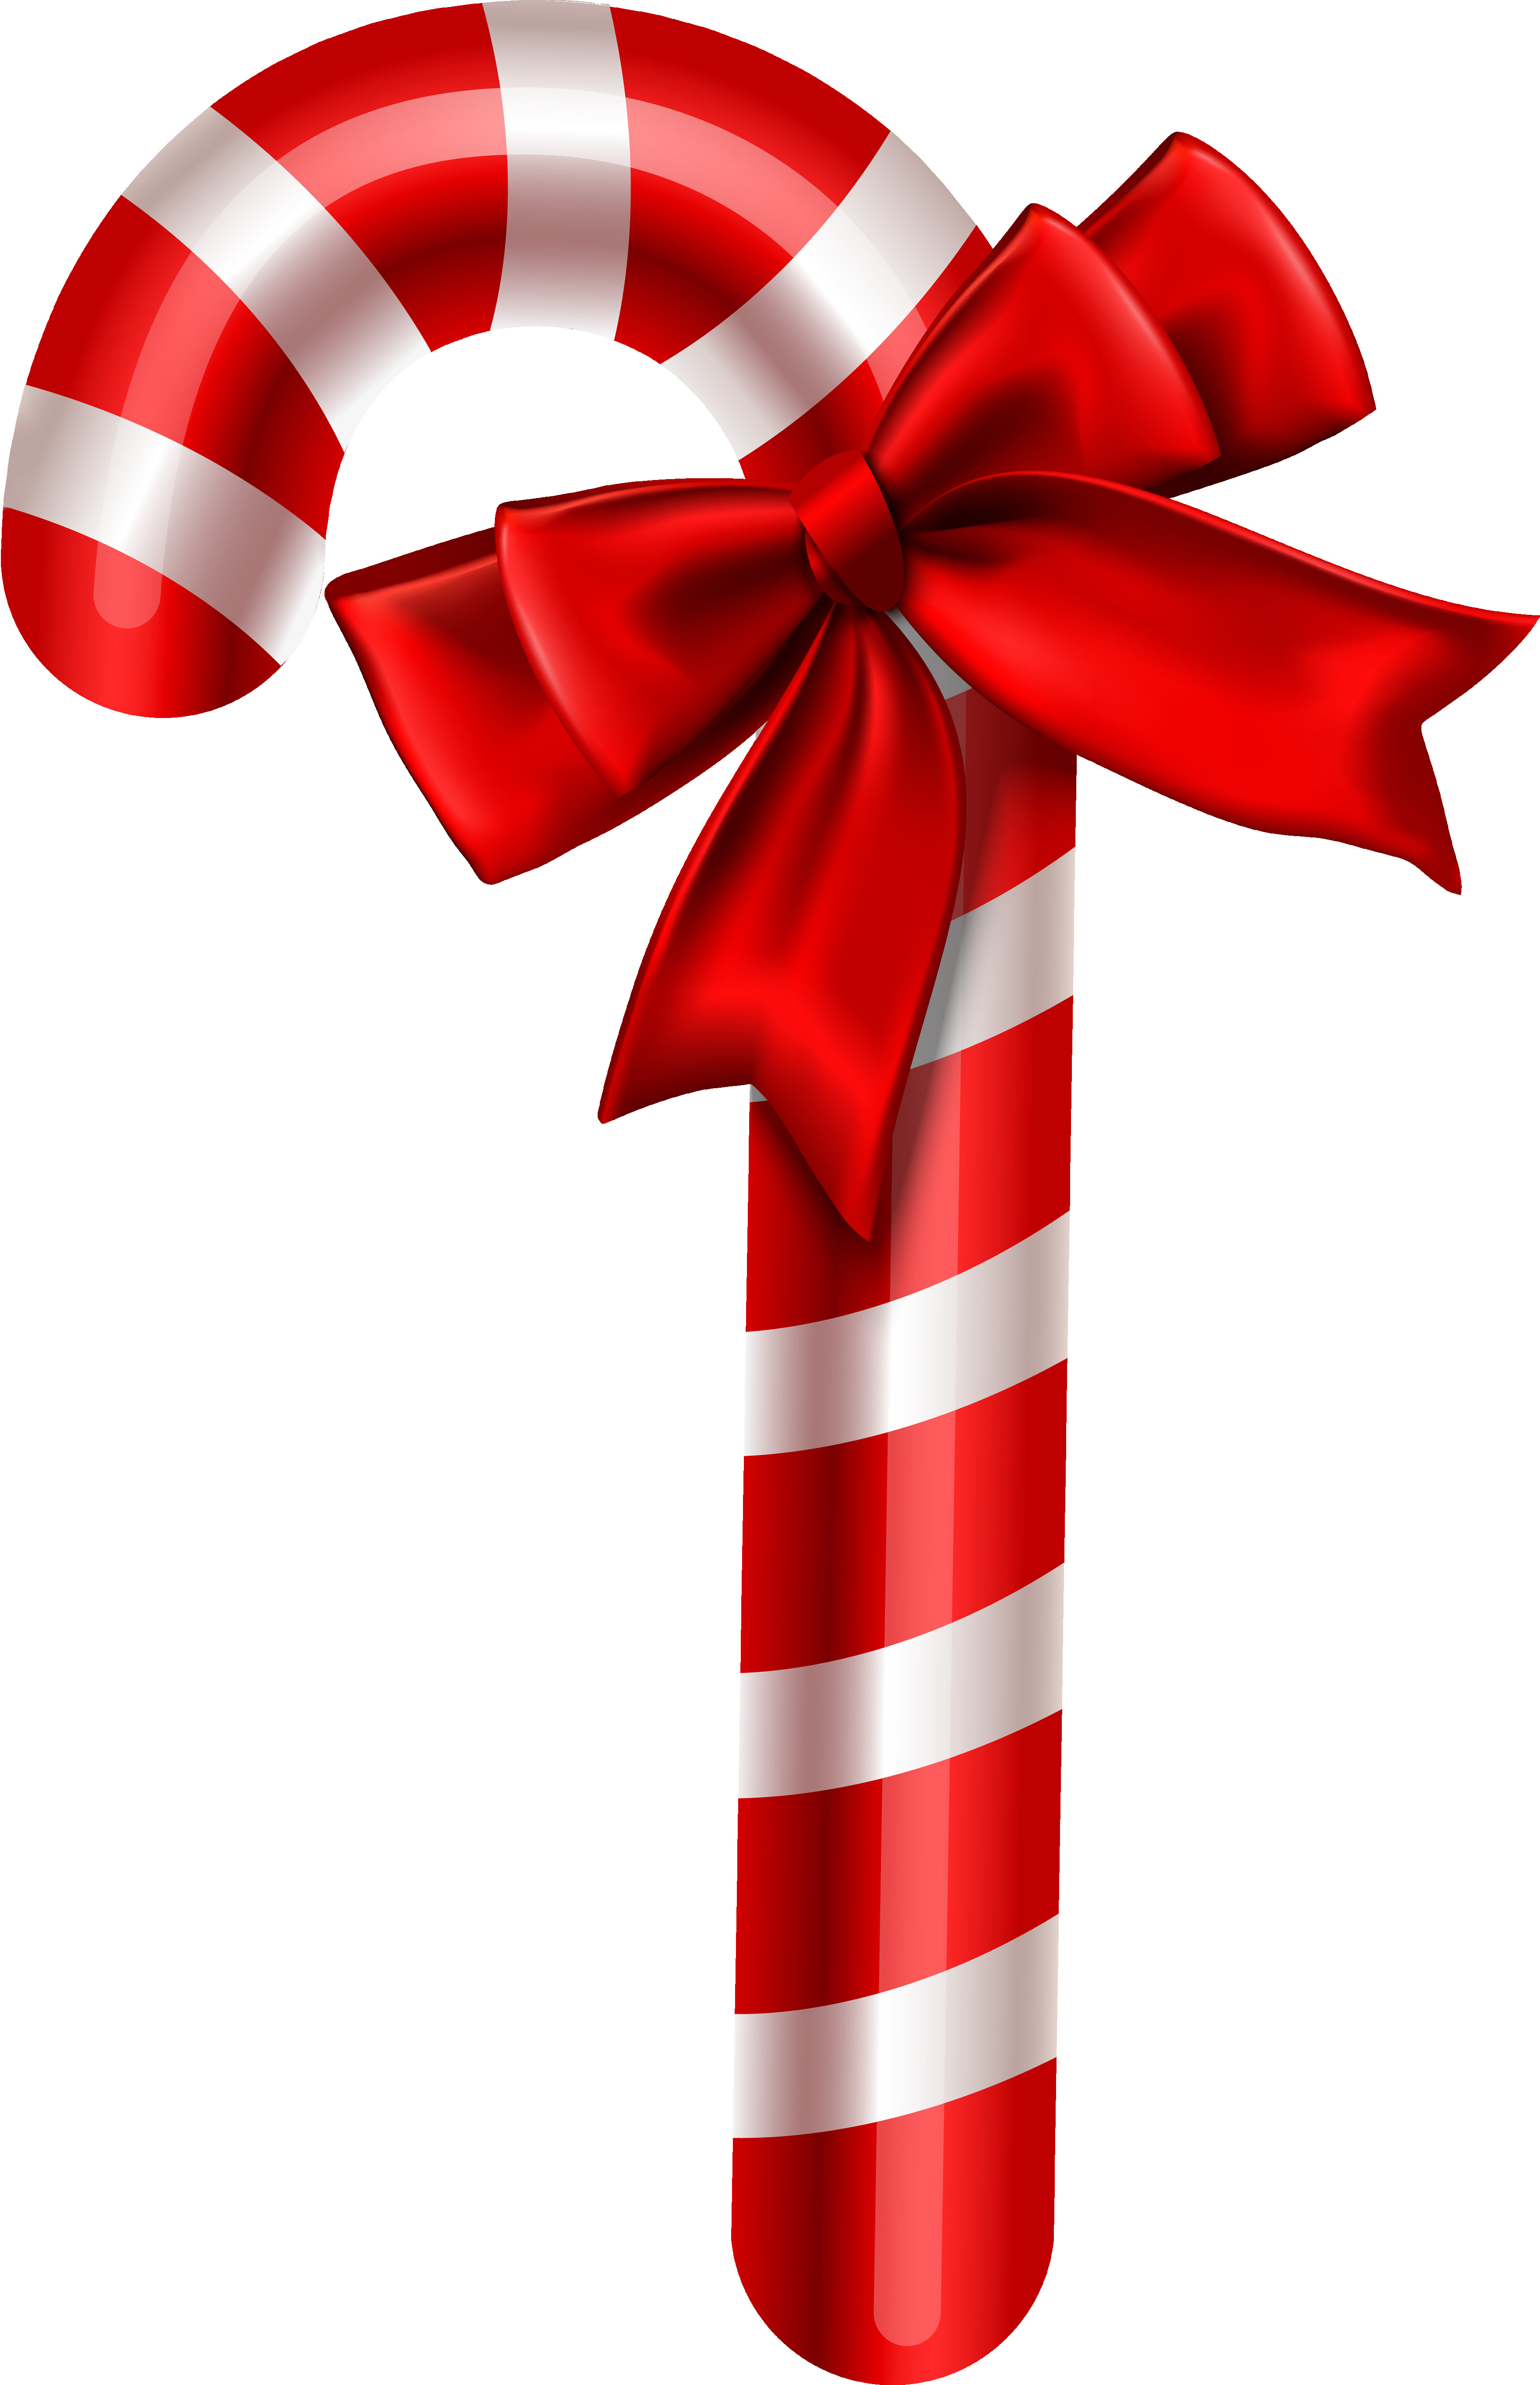 Christmas Candy Png  Christmas Candy PNG Image PurePNG